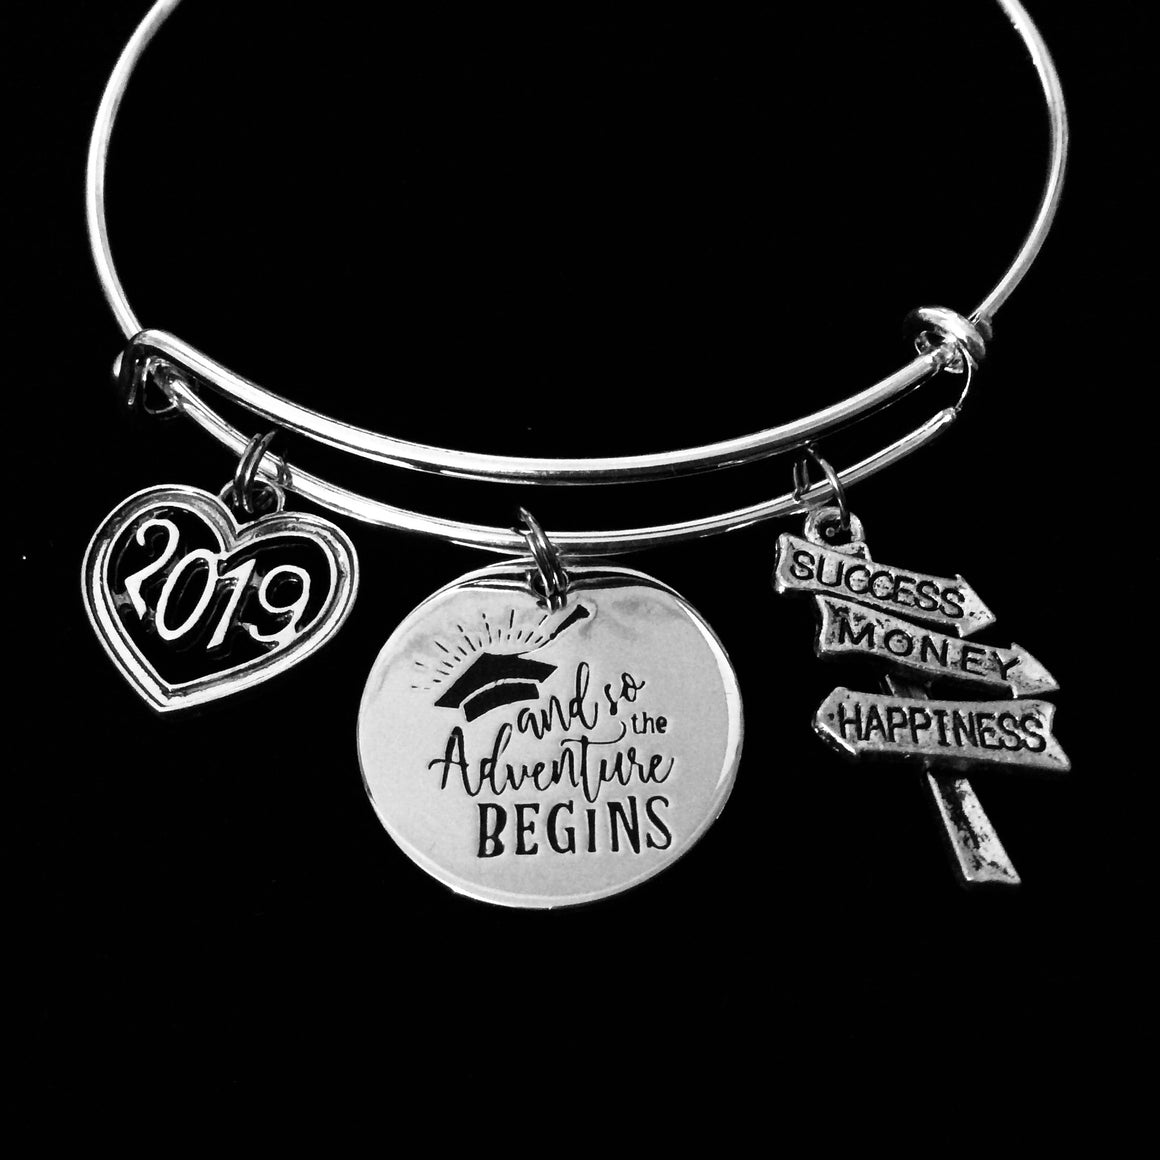 2019 Graduation Expandable Charm Bracelet So The Adventure Begins Silver Adjustable Bangle One Size Fits All Gift